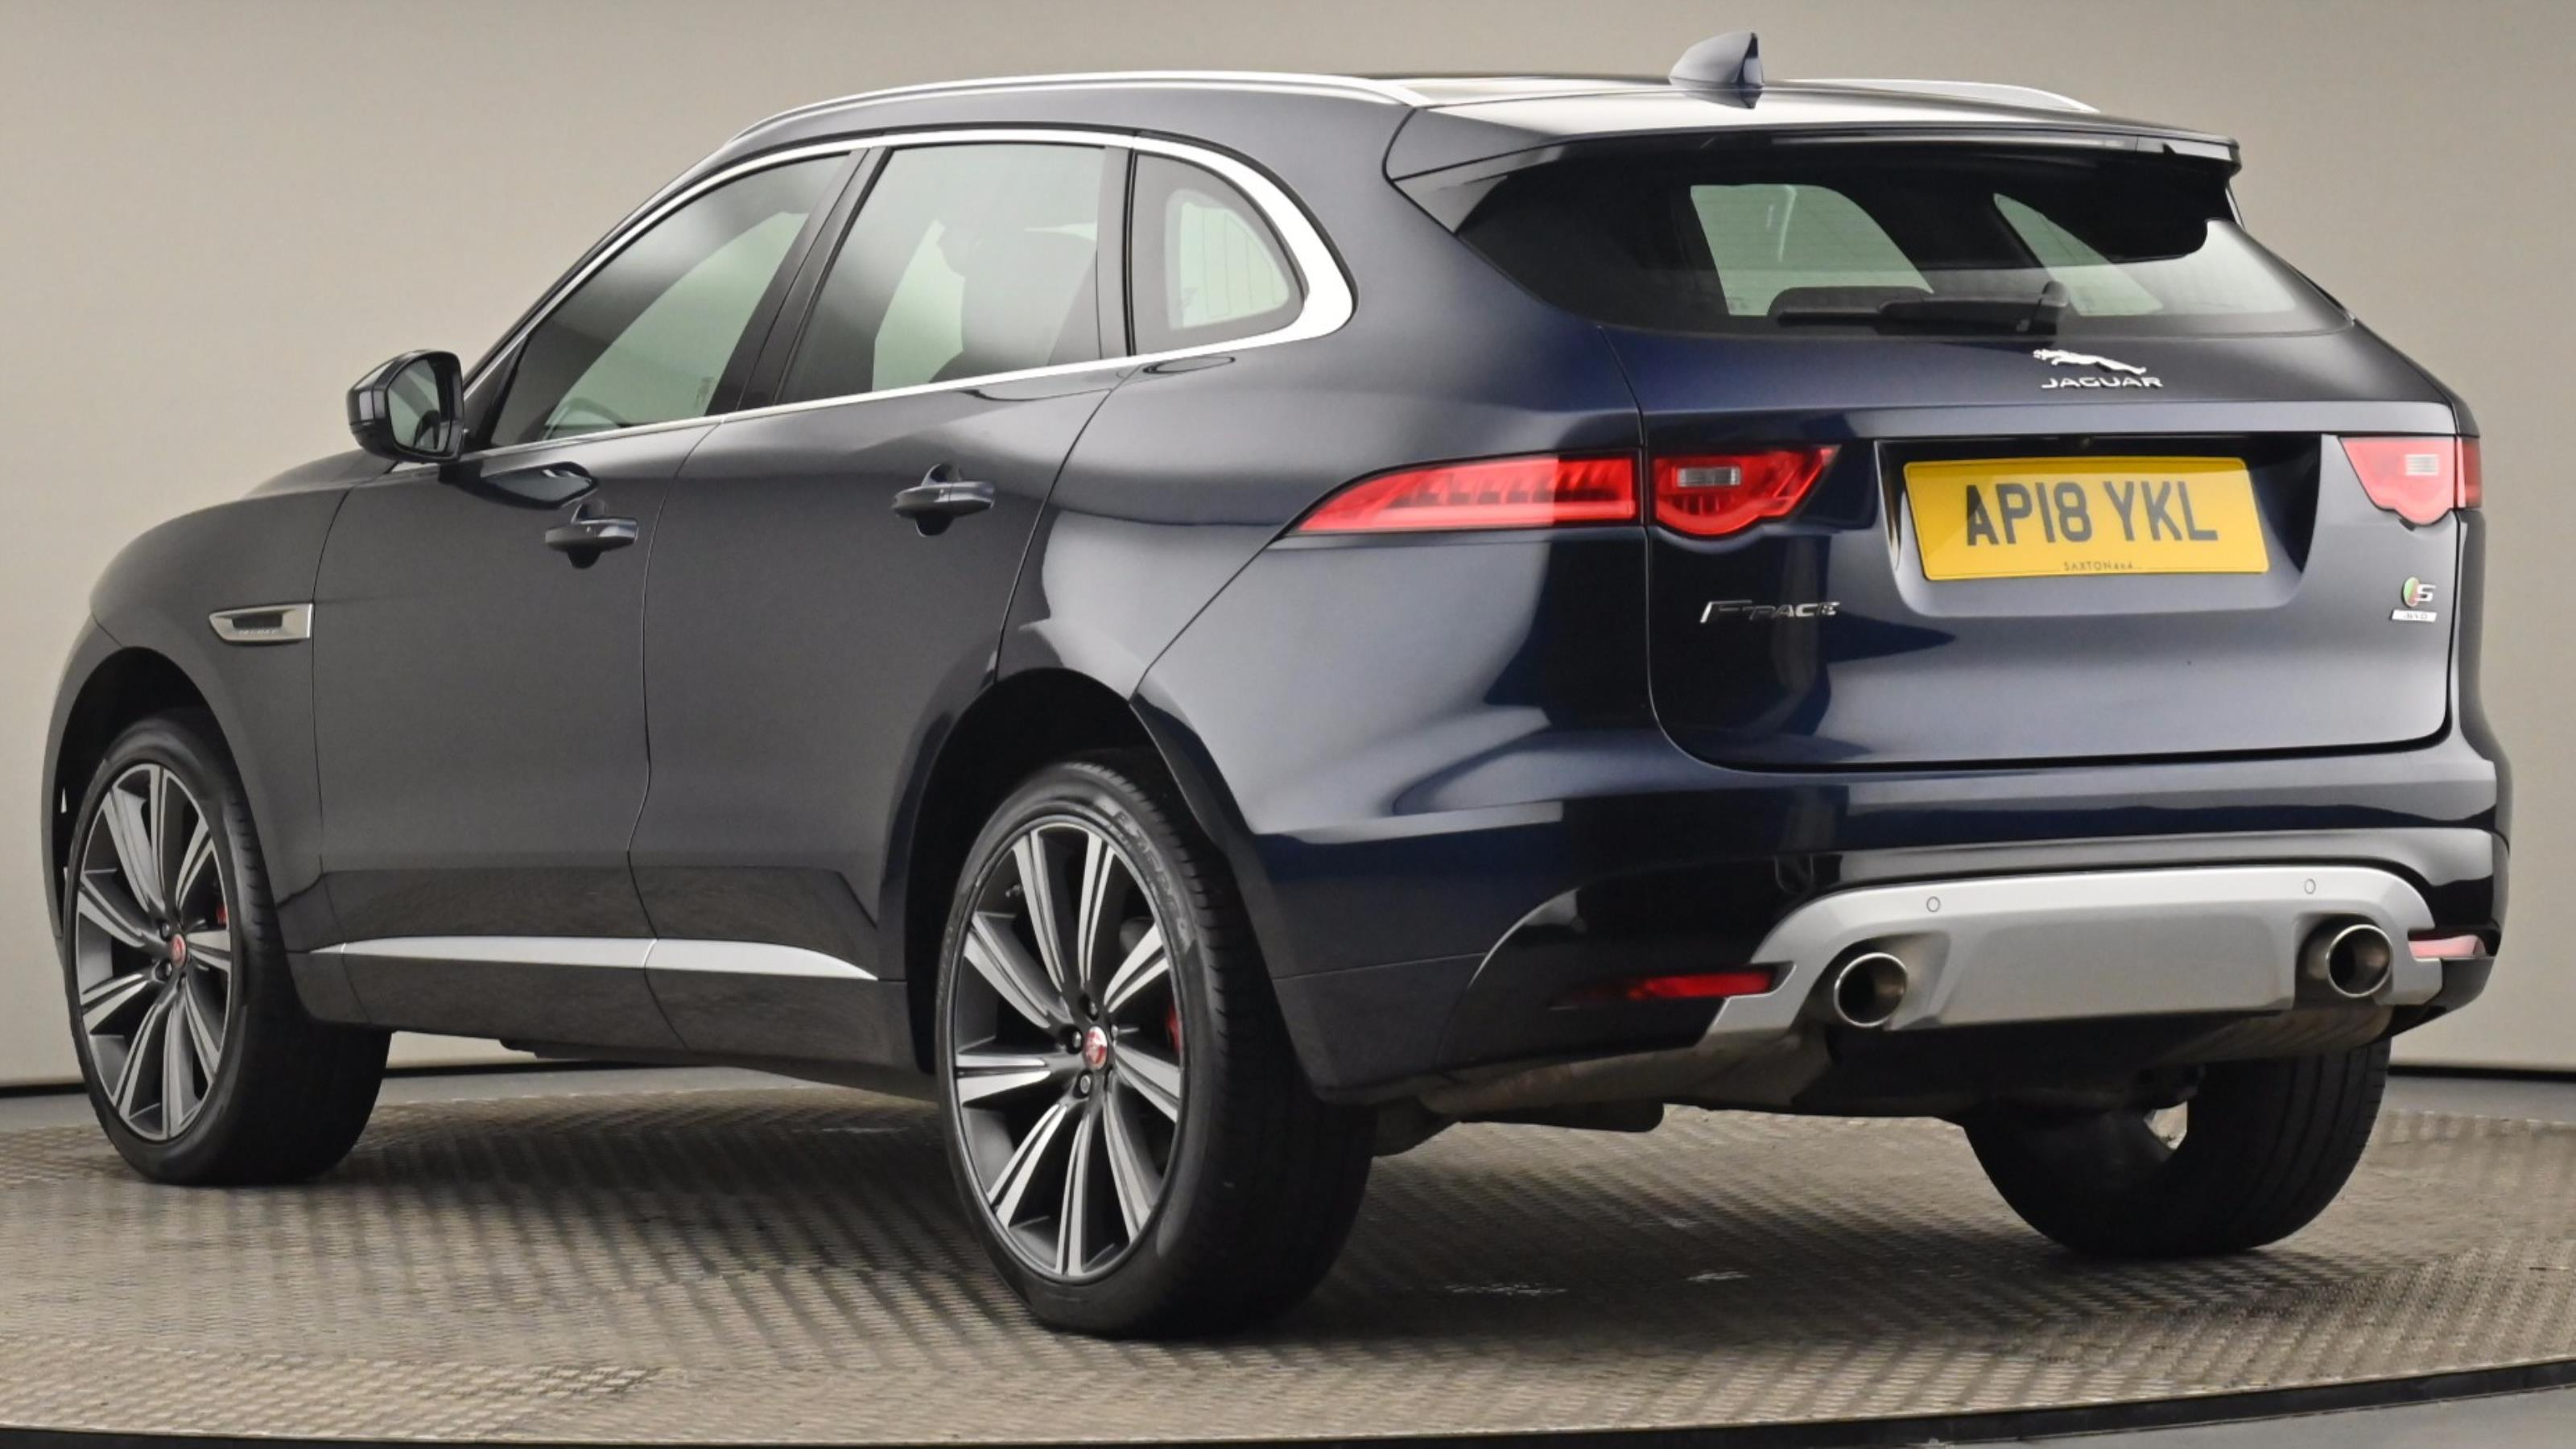 Used 2018 Jaguar F-PACE 3.0 Supercharged V6 S 5dr Auto AWD BLUE at Saxton4x4